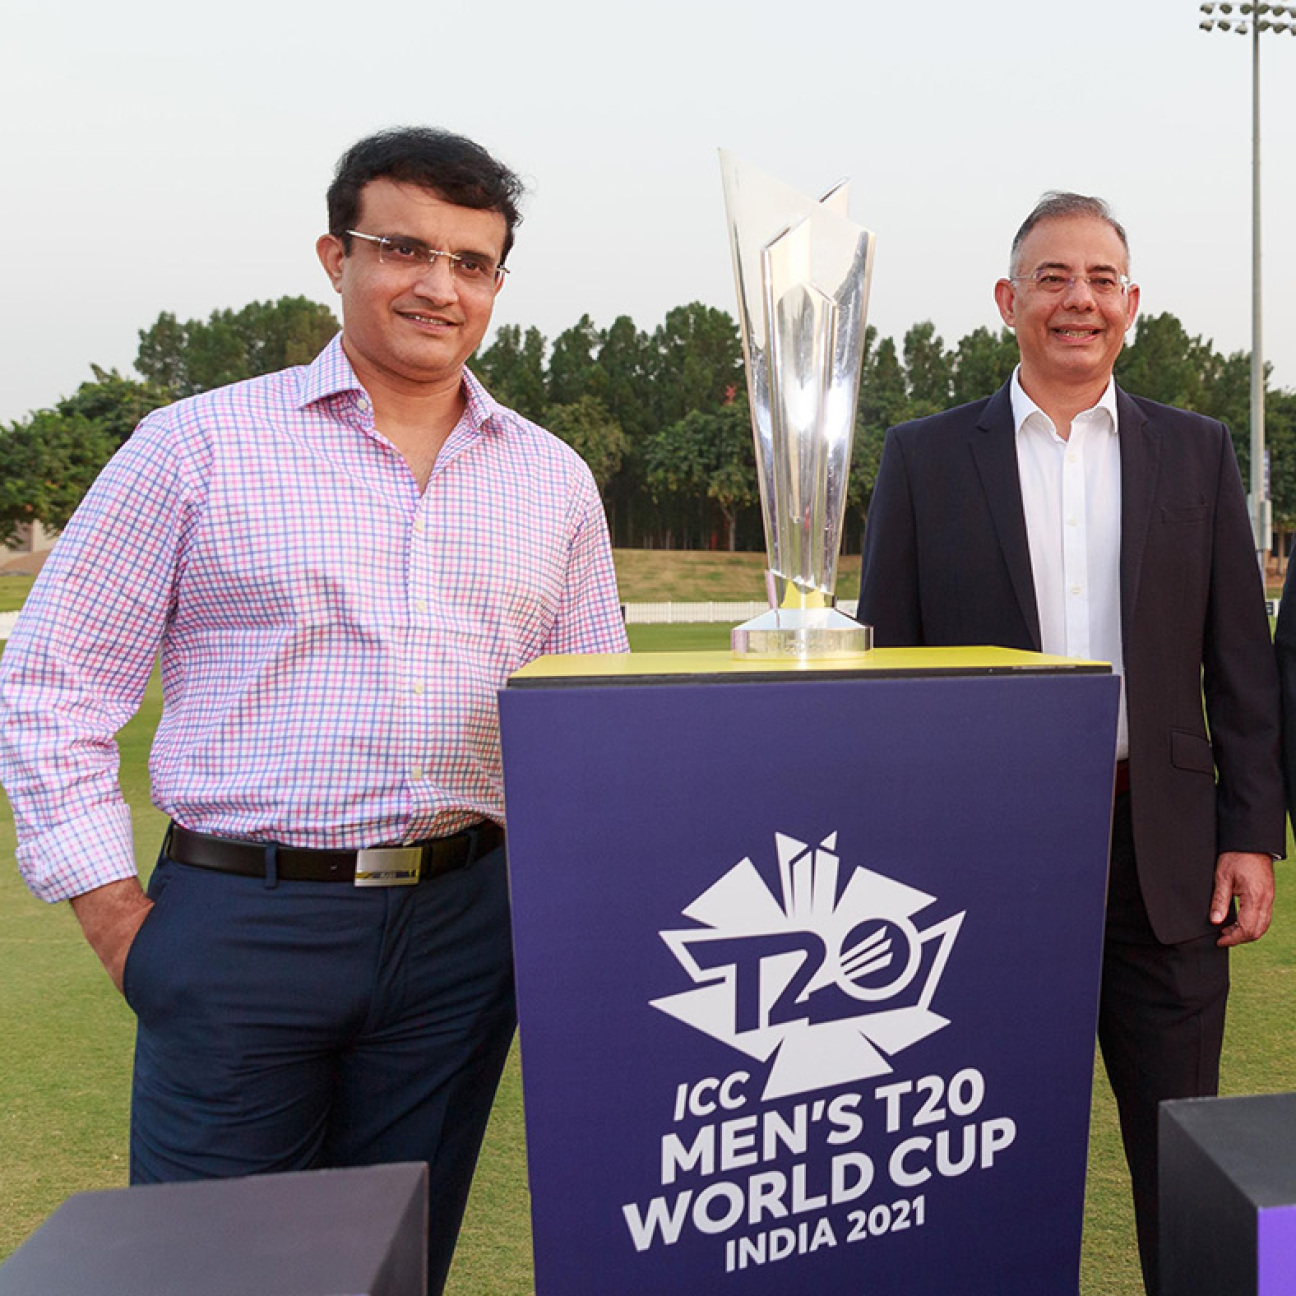 ICC leaning towards T20 World Cup in UAE